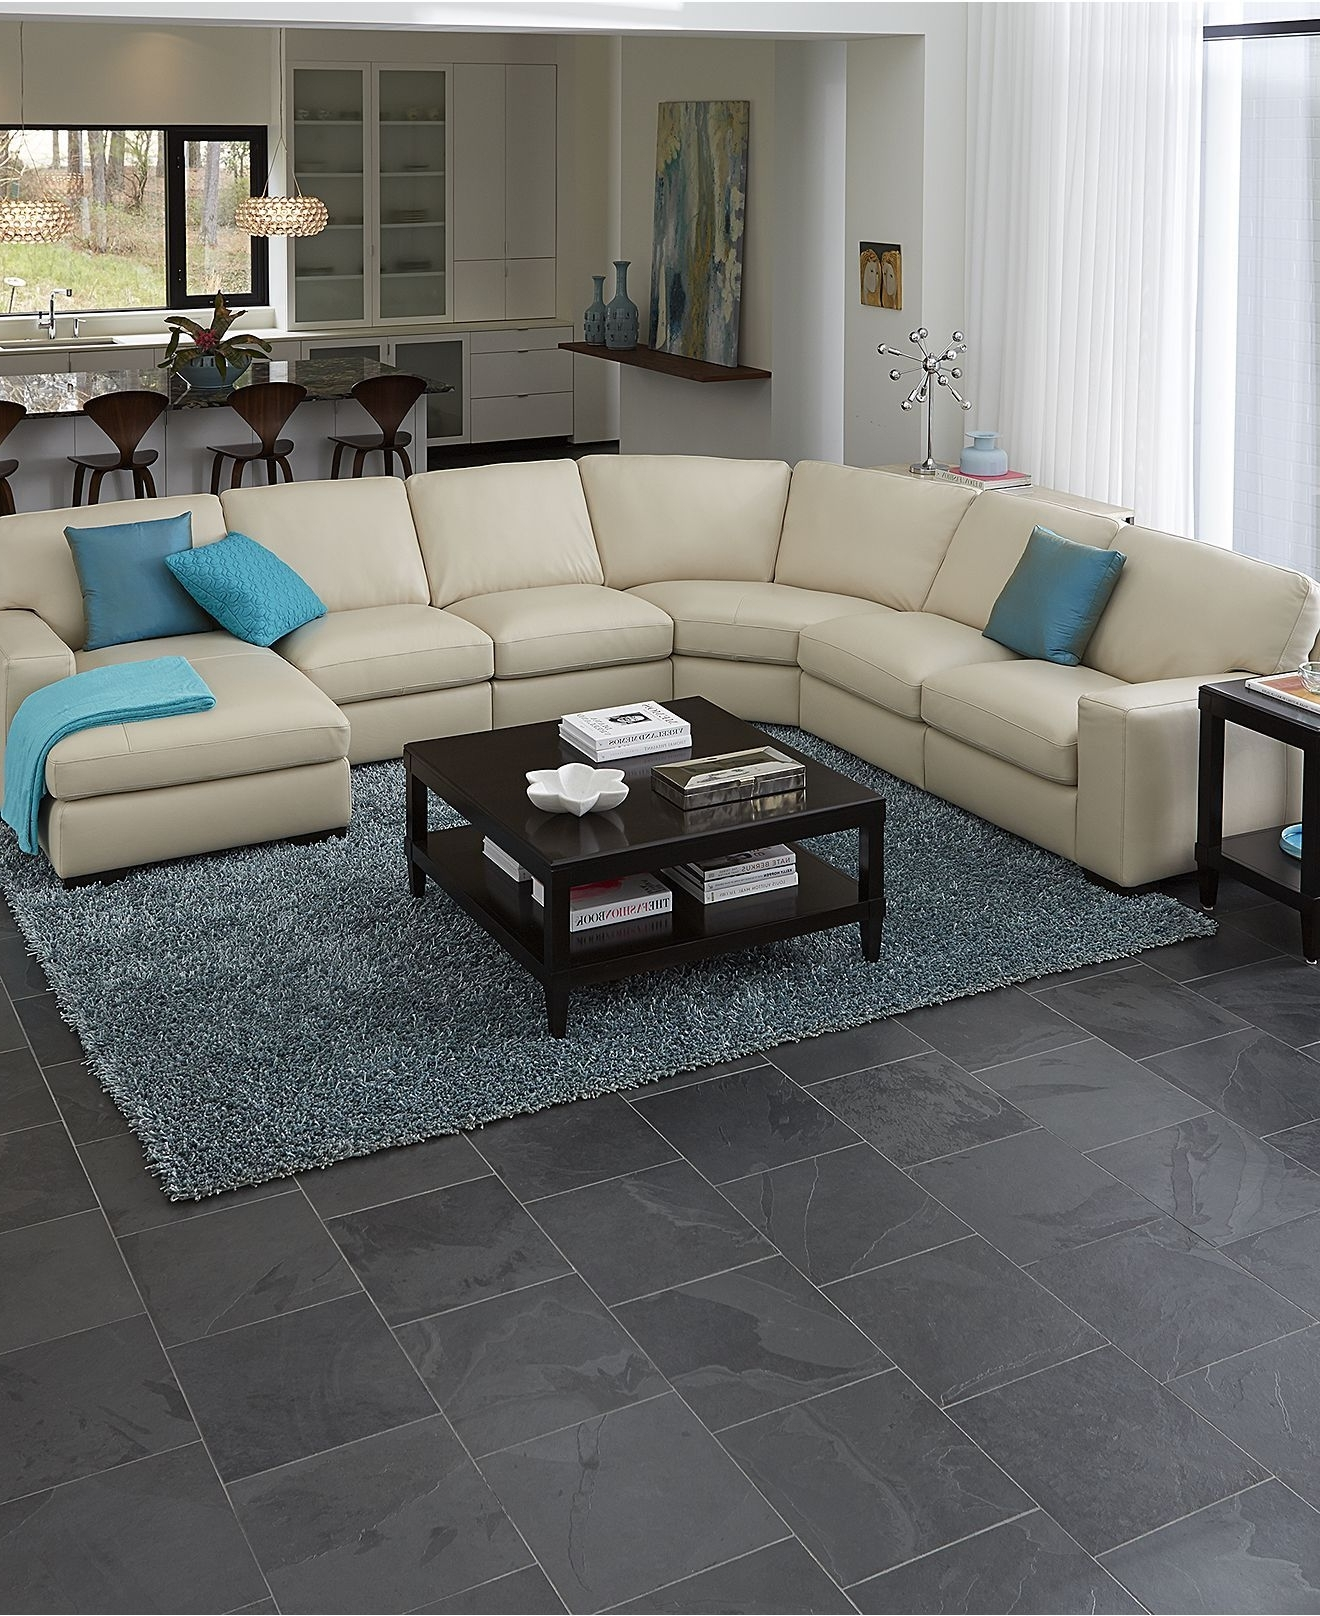 Oakville Sectional Sofas Pertaining To Most Up To Date Fabrizio Leather Sectional Sofa Living Room Furniture Collection (View 12 of 20)